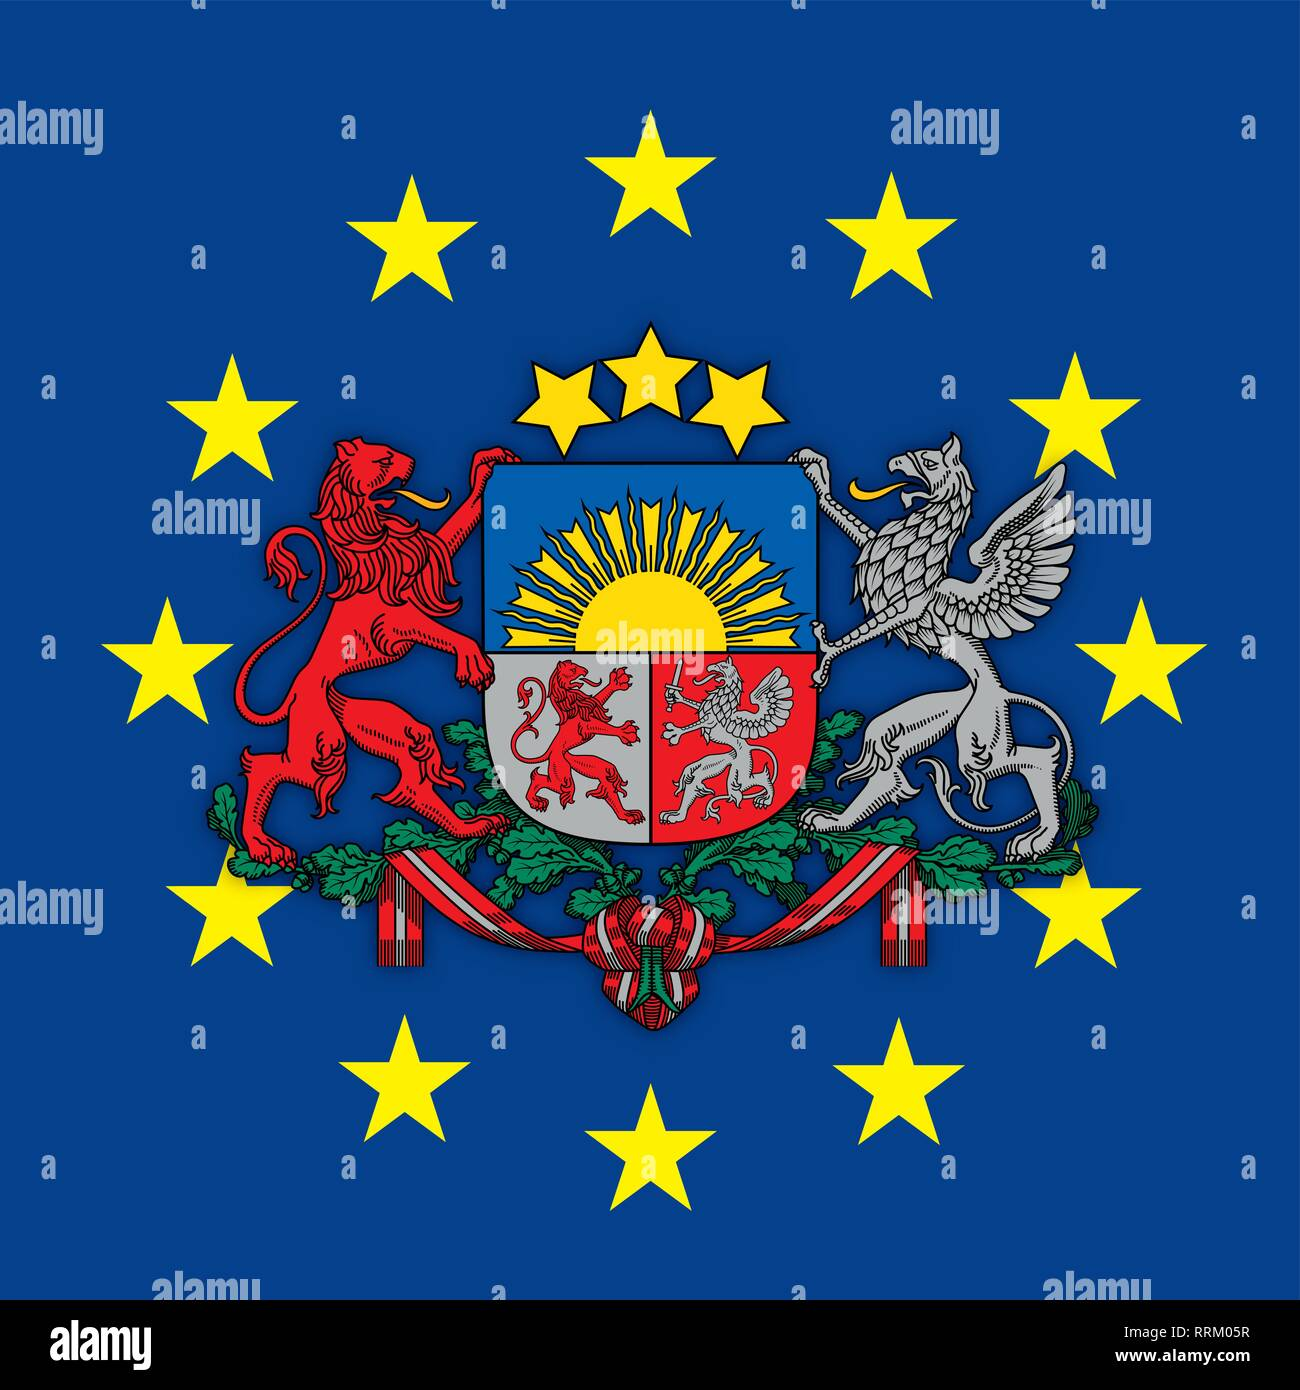 Latvia coat of arms on the European Union flag, vector illustration - Stock Image